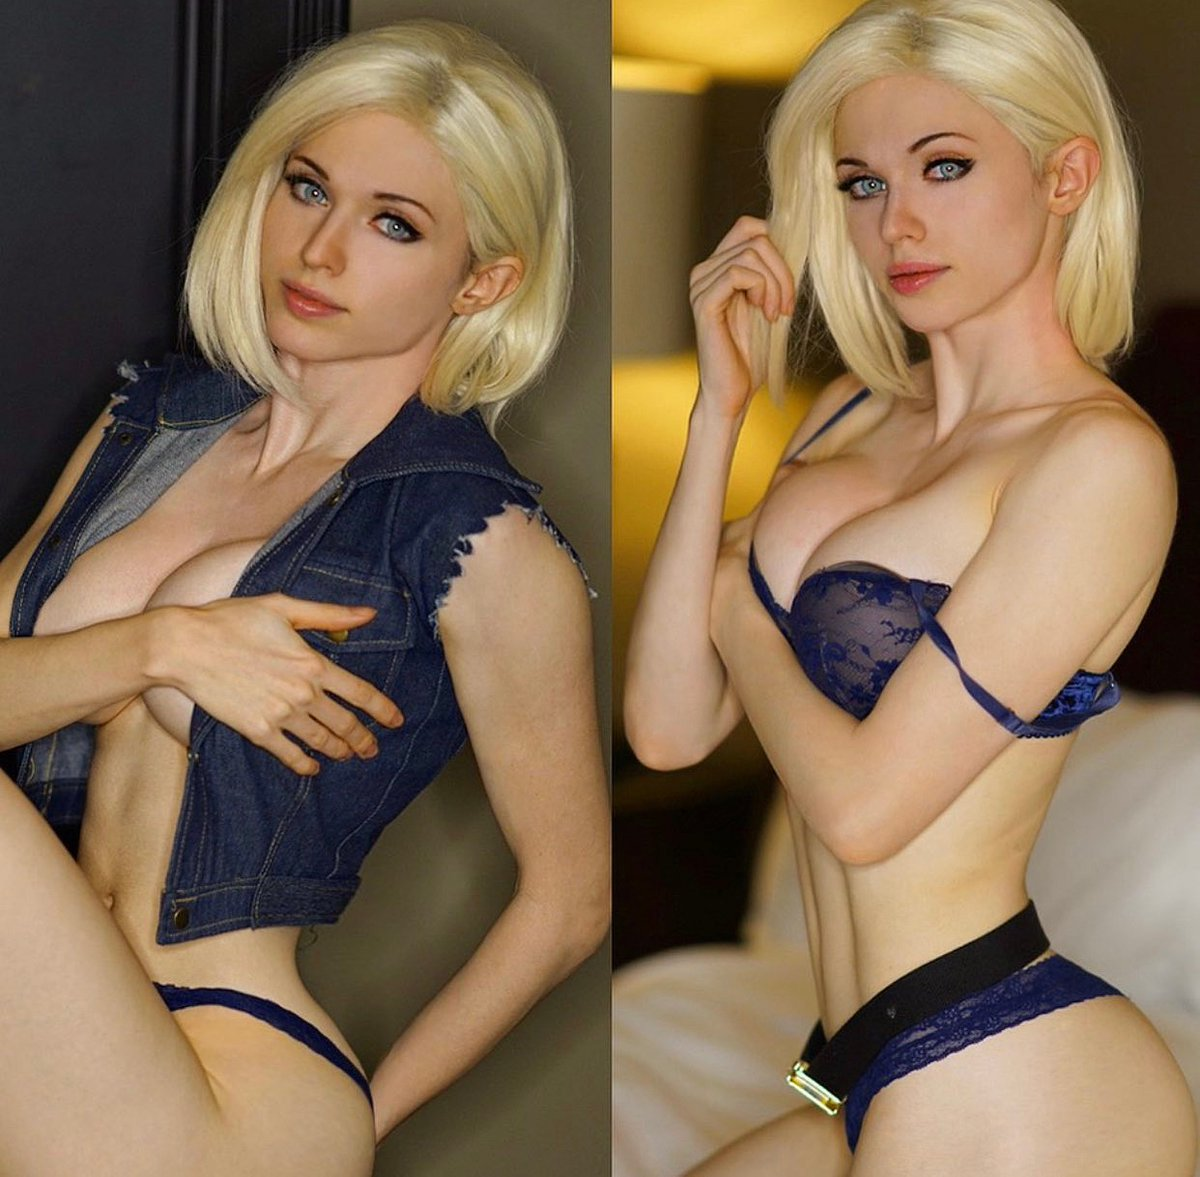 Like if you enjoy cosplay   For fun roleplay vids & moar: